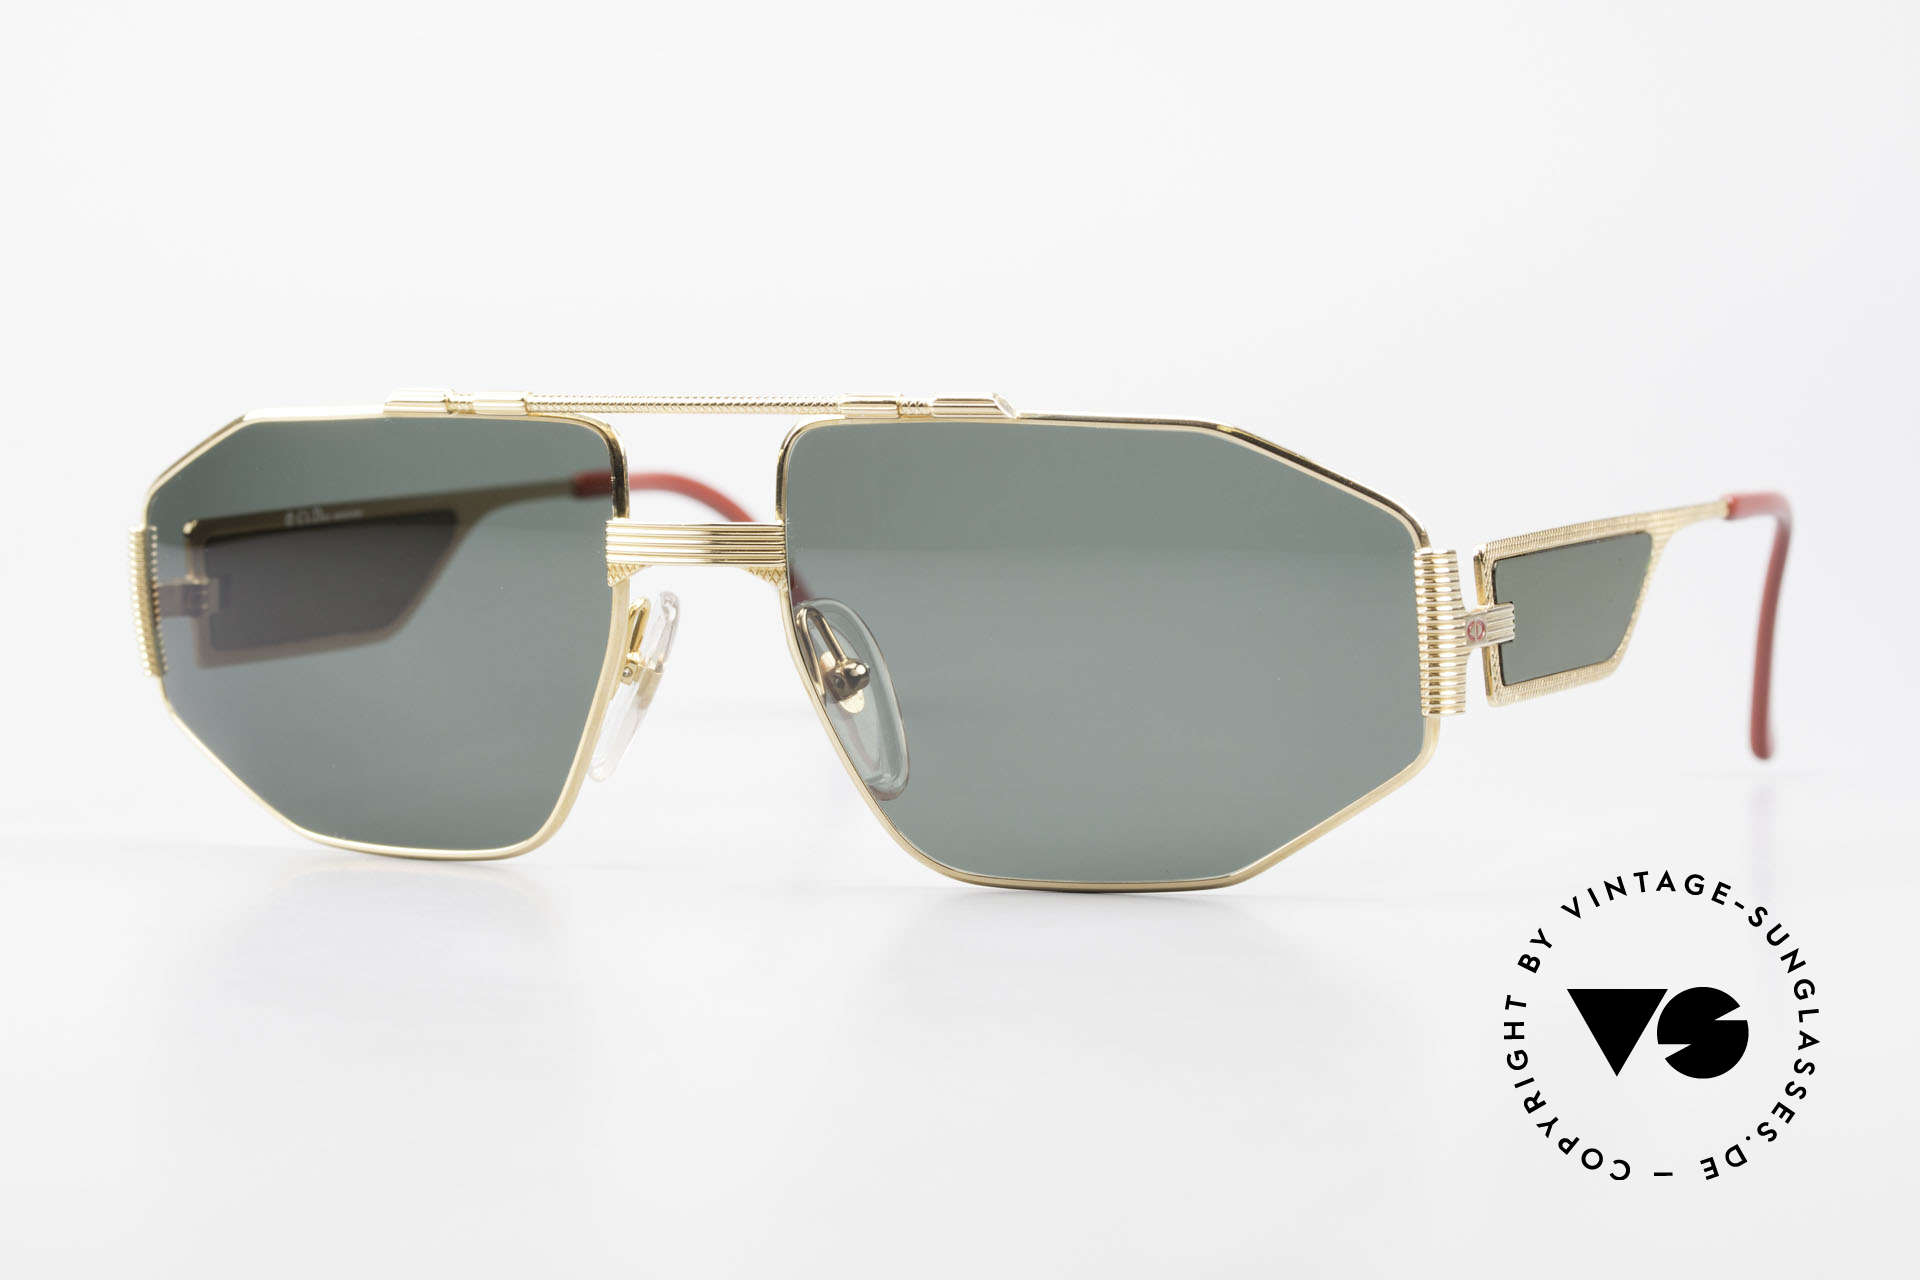 Christian Dior 2427 Dior Monsieur 80's Sunglasses, vintage glasses of the Dior Monsieur Series from 1988, Made for Men